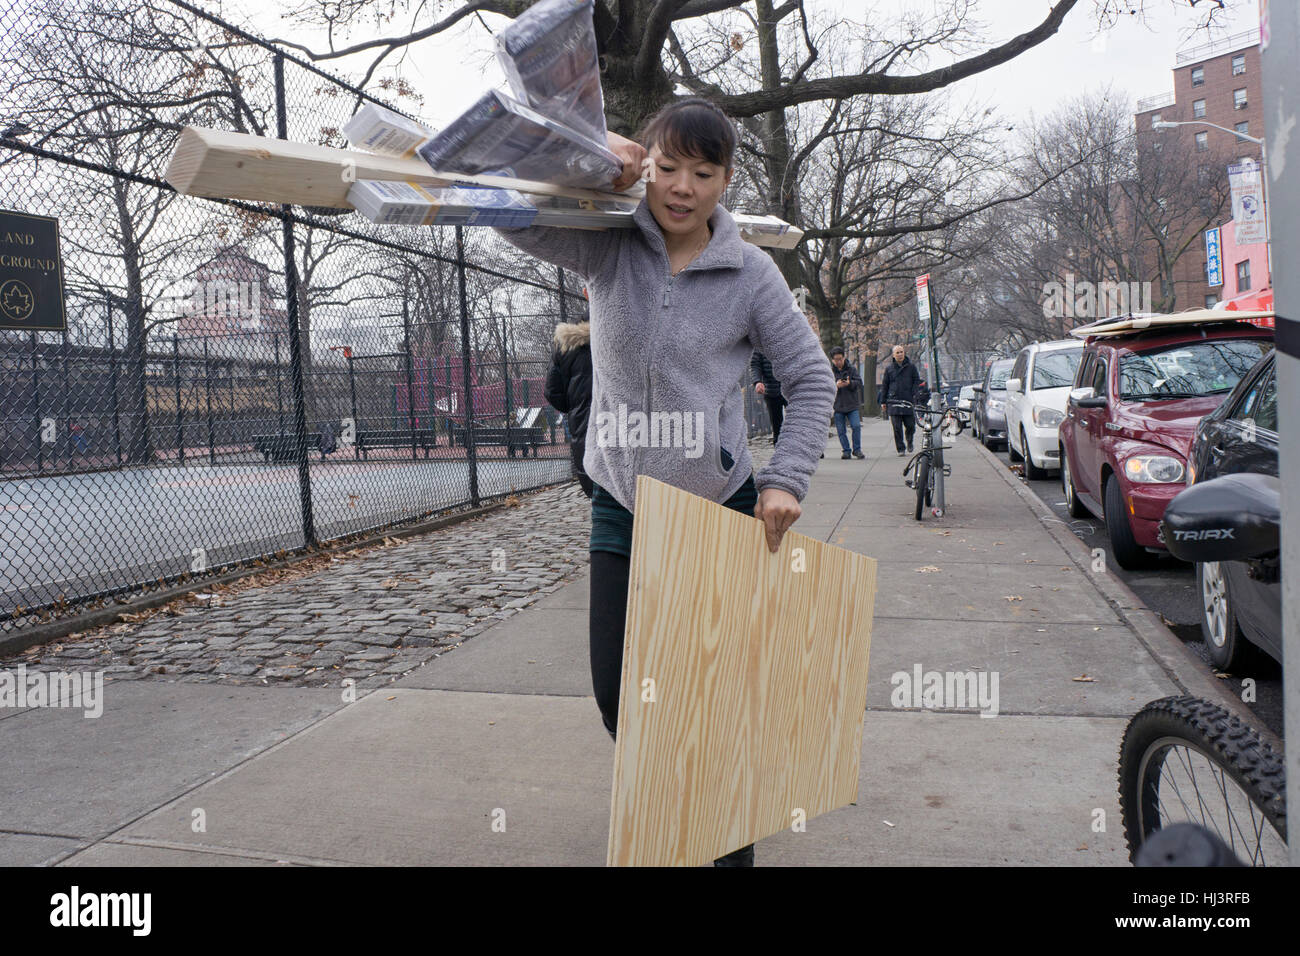 A Chinese American woman carrying wood and lumber to a construction site in Chinatown, downtown Flushing, Queens, New York. Stock Photo